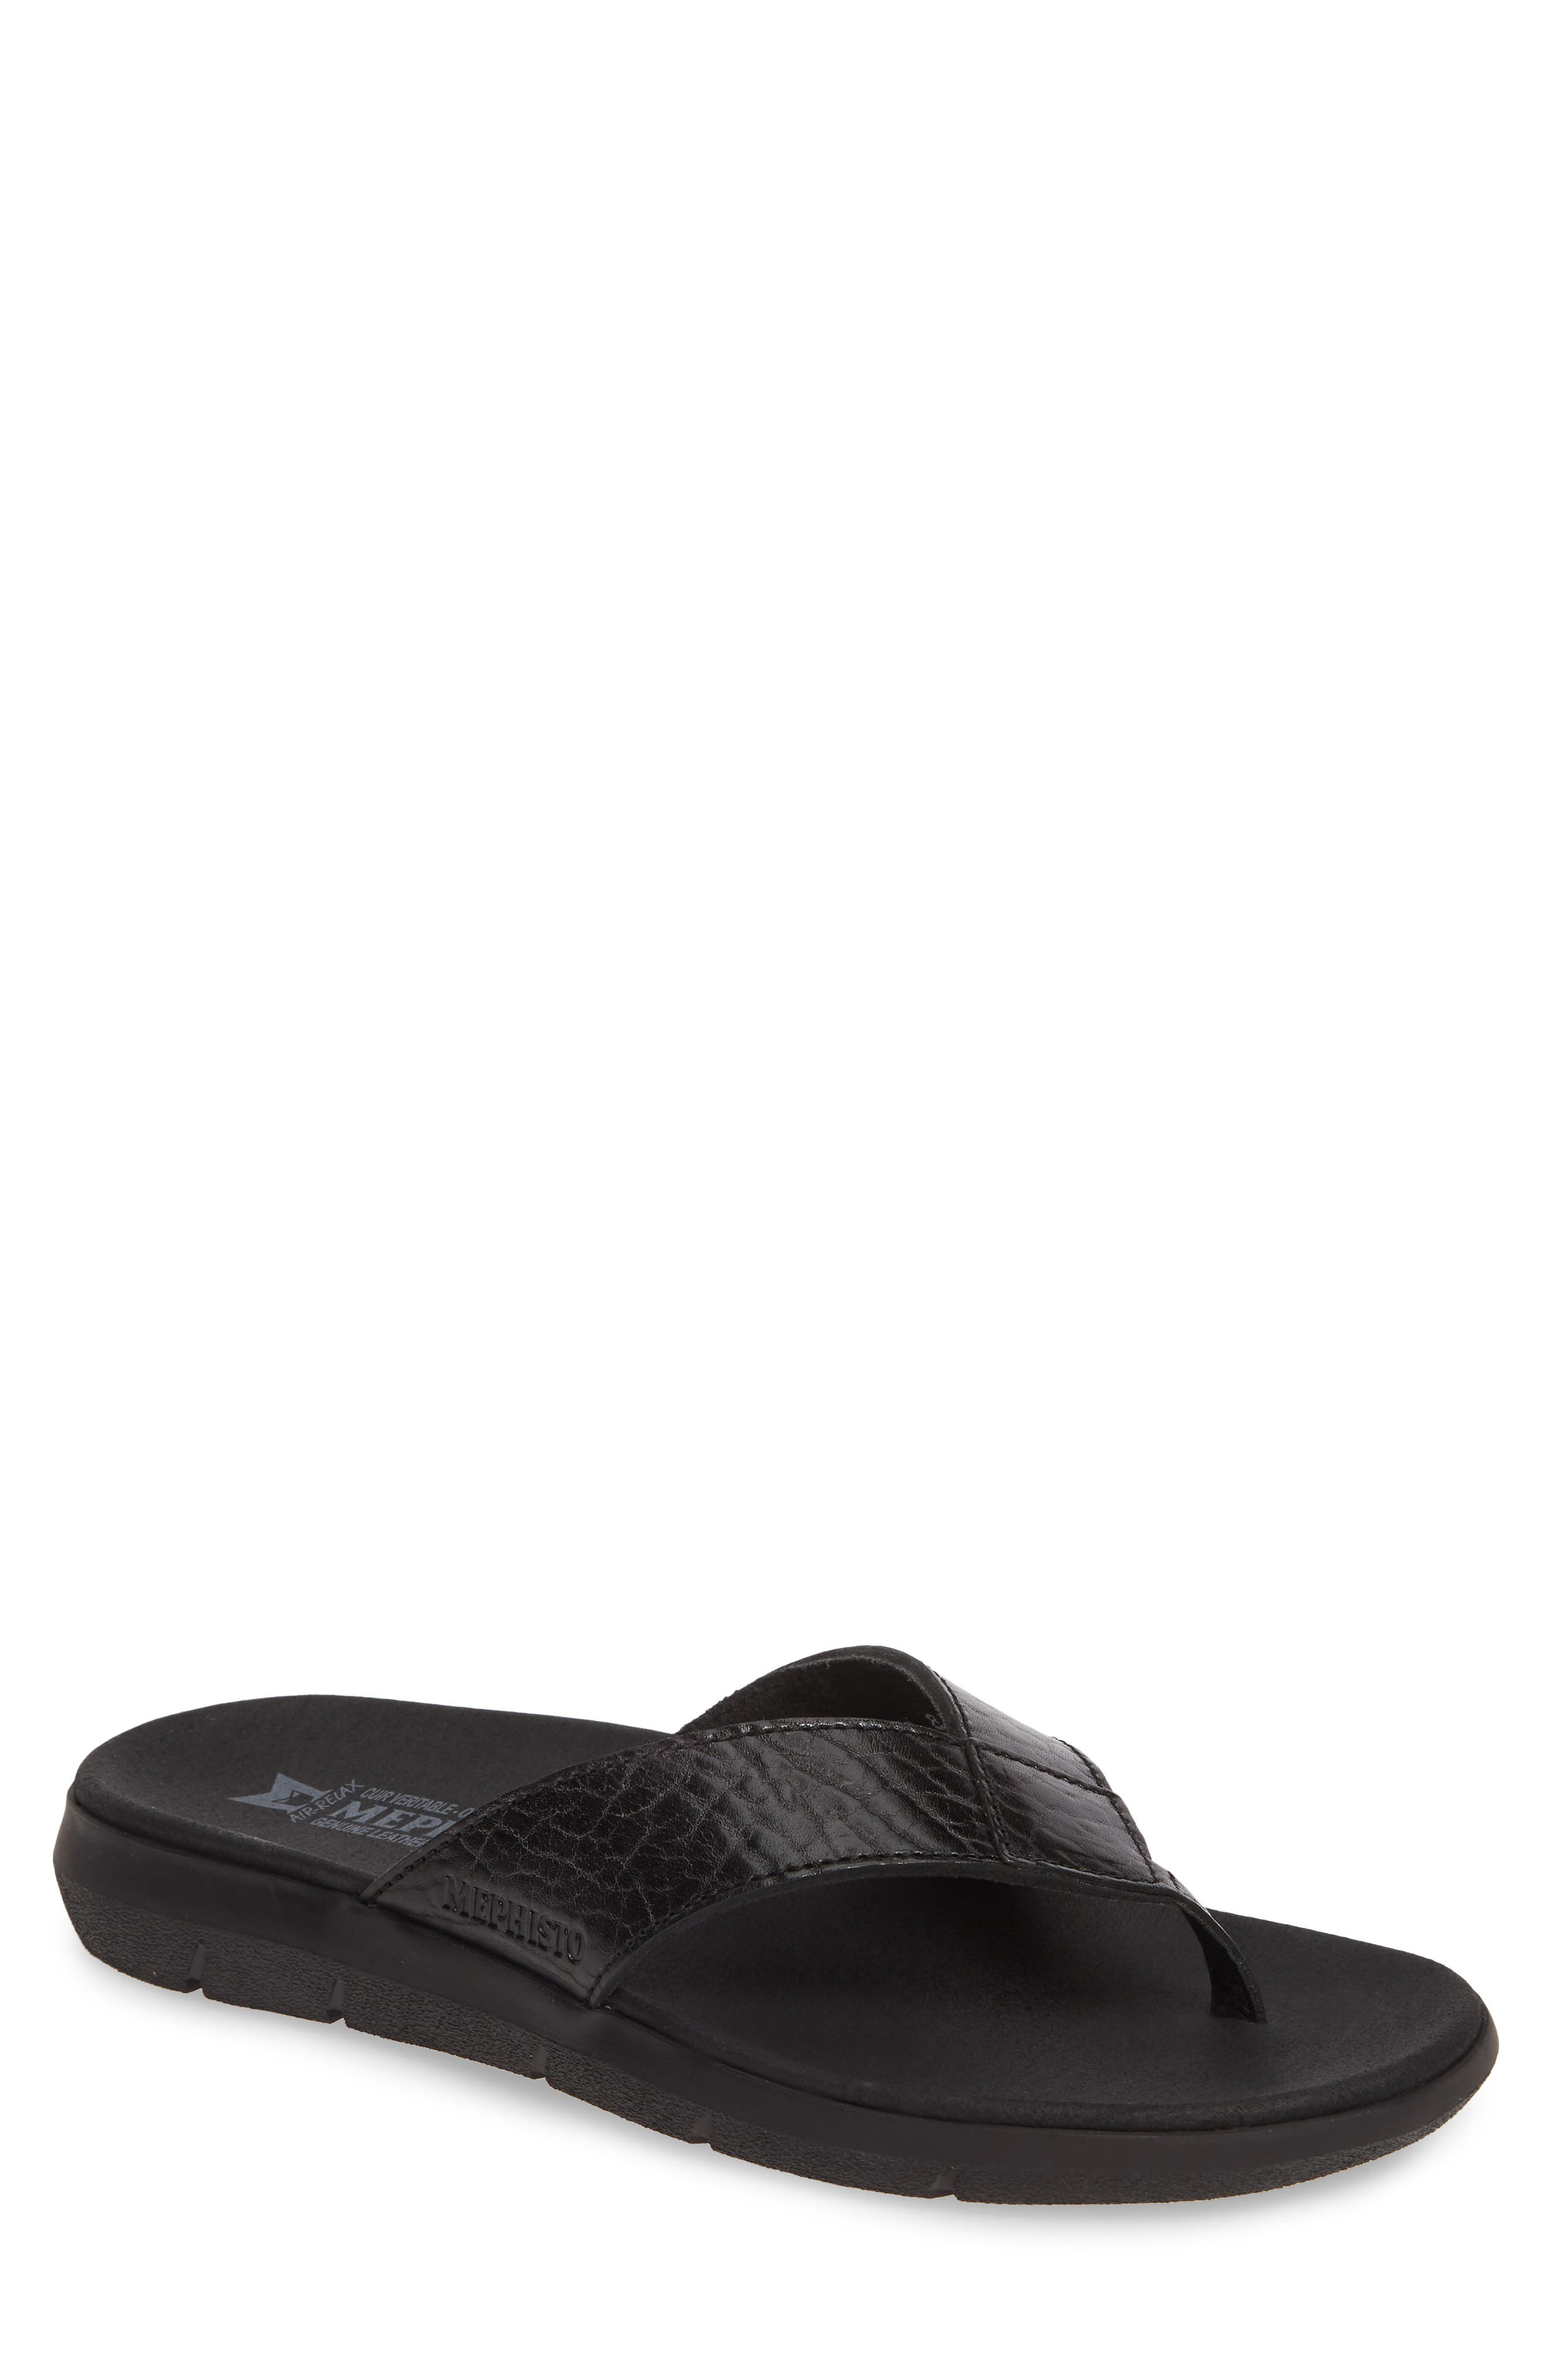 Charly Flip Flop, Main, color, BLACK LEATHER